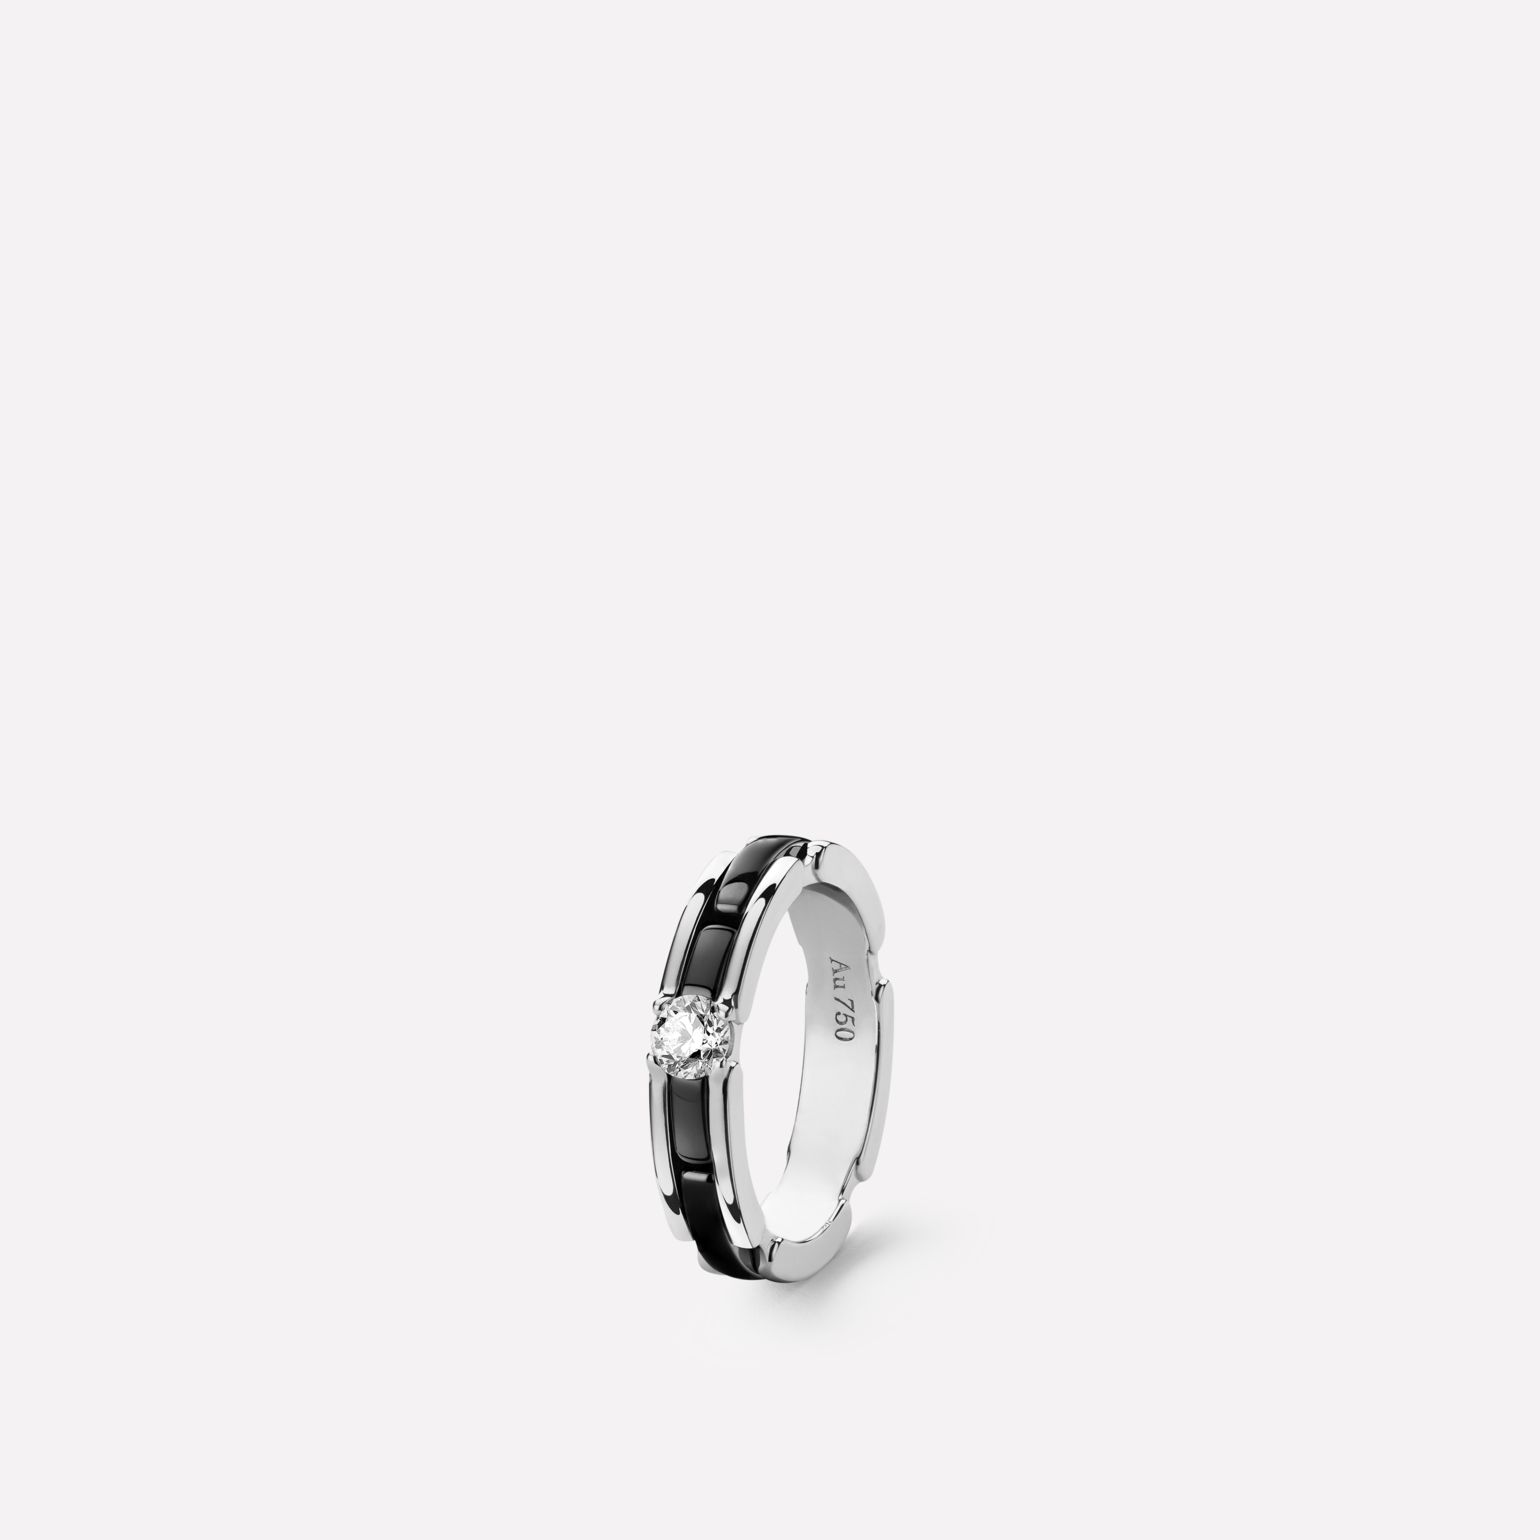 Ultra Ring Ultra ring in black ceramic, 18K white gold and central diamond. Slim version.